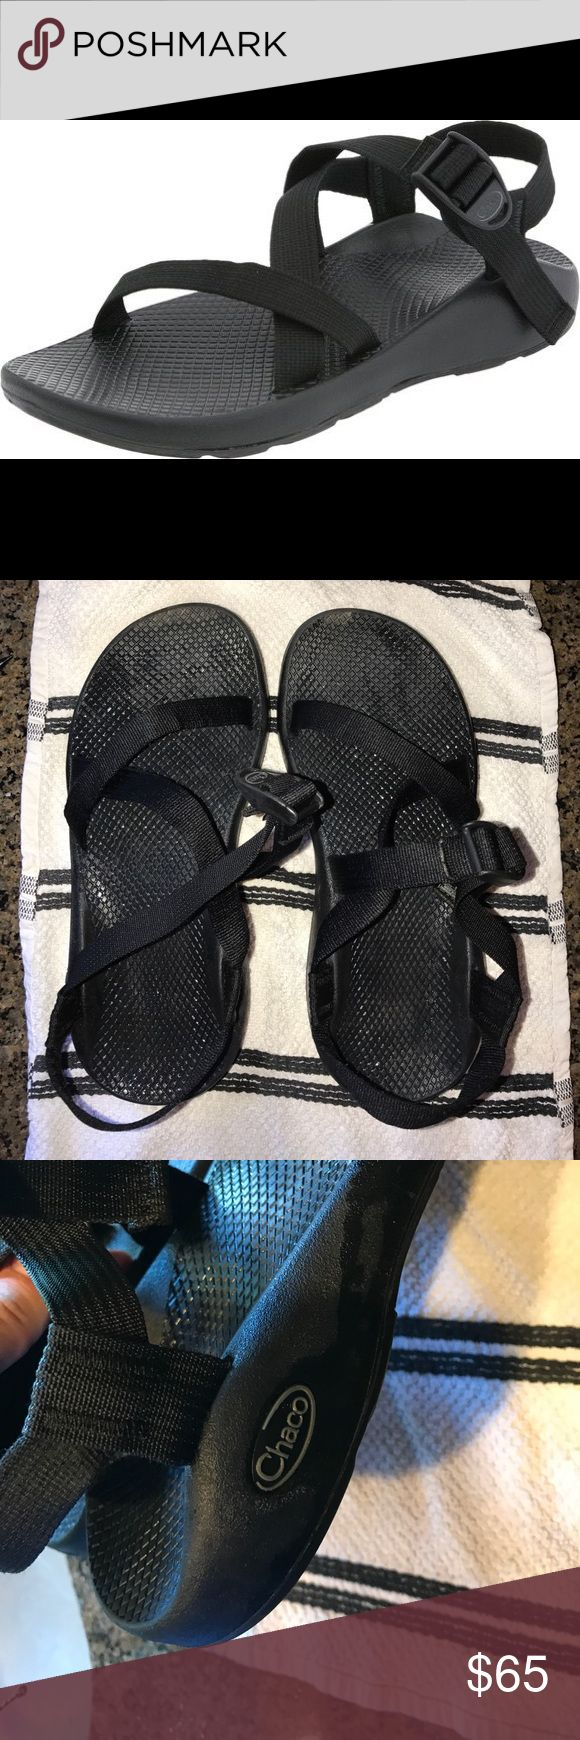 Women's Chaco Sandals Water Resistant - size 10 Excellent used condition; there is a little bit of dirt on the top & bottom - can usually be washed out; great for hiking & other outdoor activities!; feel free to make a reasonable offer!💕💕 Chacos Shoes Sandals